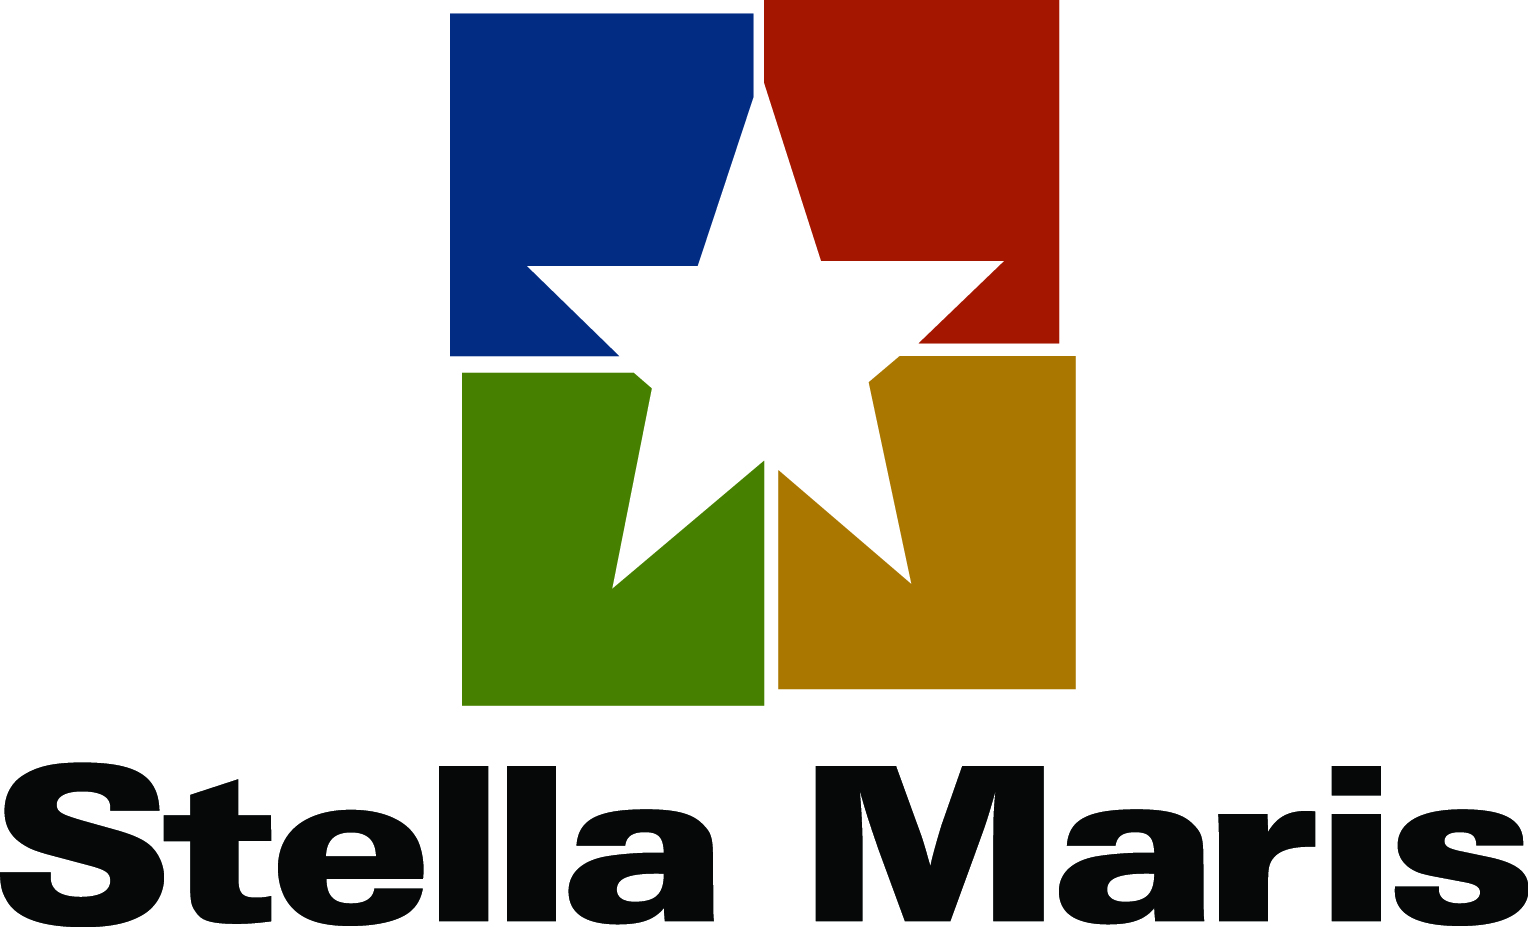 Stella Maris color